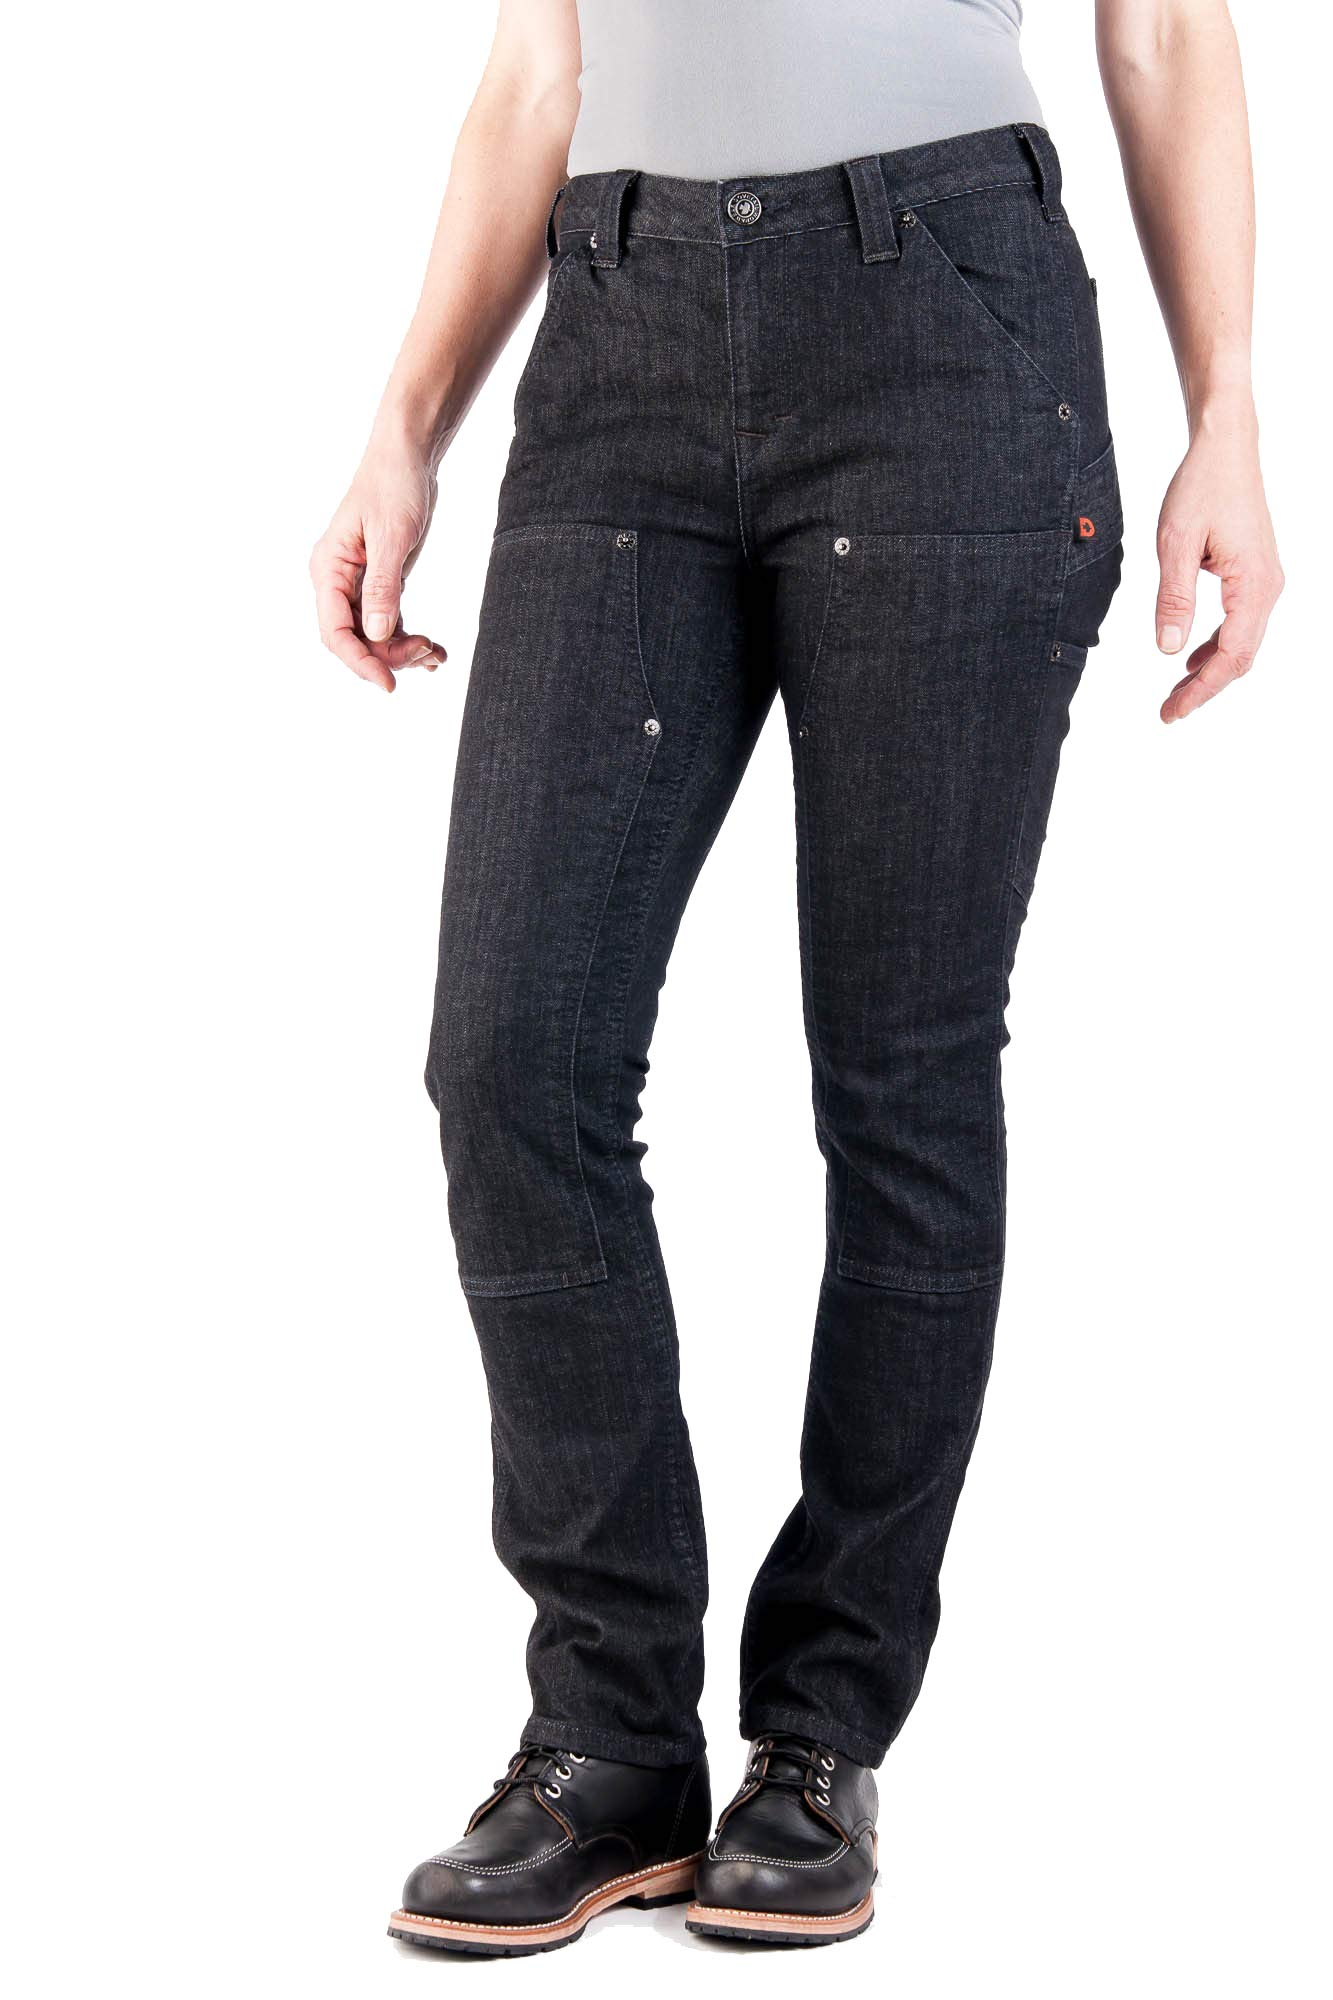 Dovetail Workwear Utility Pants for Women |The Maven| Slim Fit Cargo Pant - Available in Durable Stretch Canvas or Denim